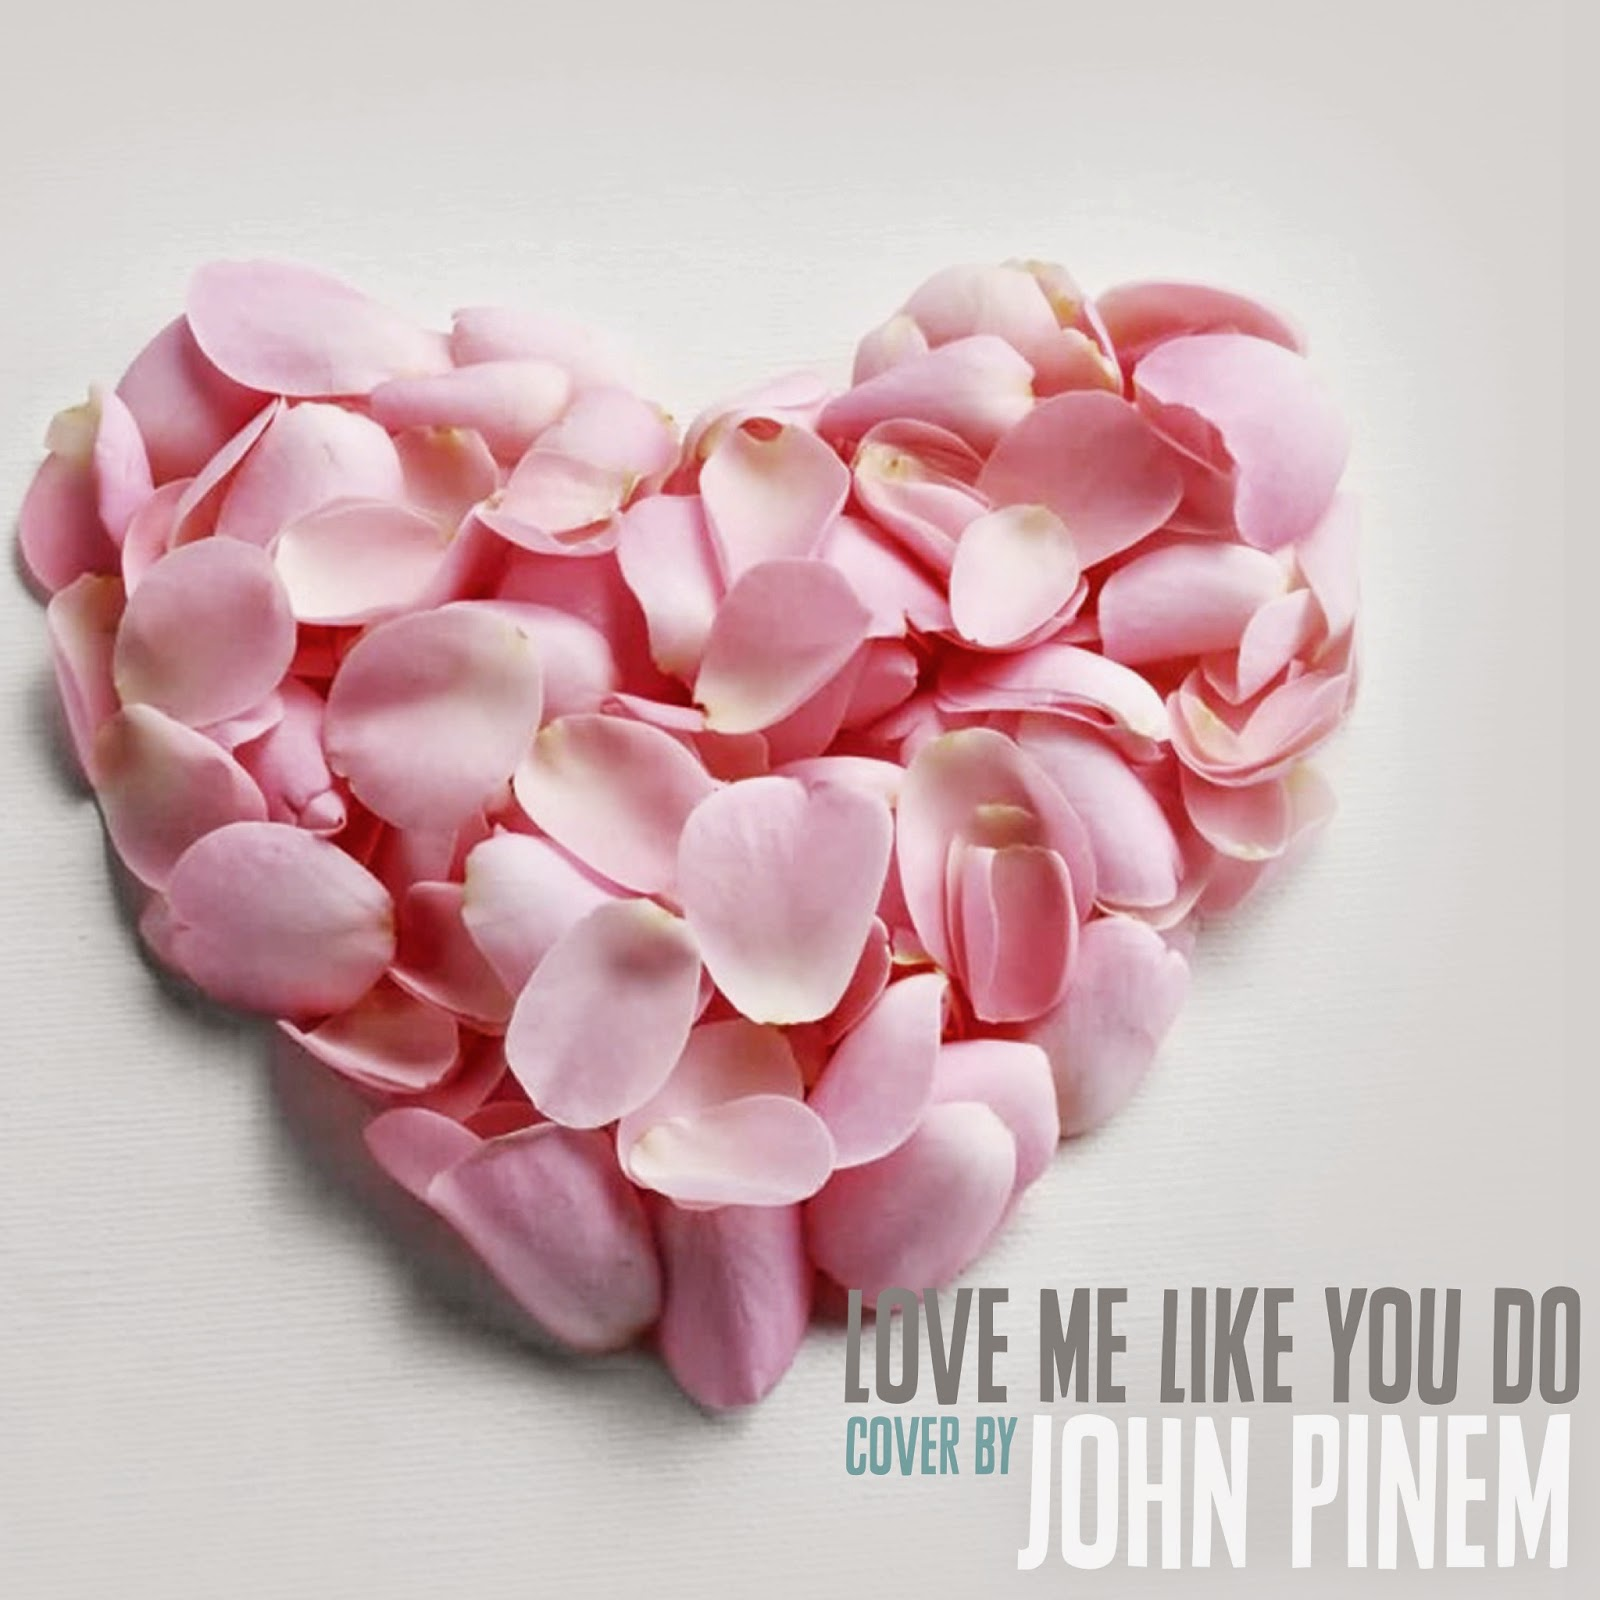 John Pinem - Love Me Like You Do (Acoustic Cover)